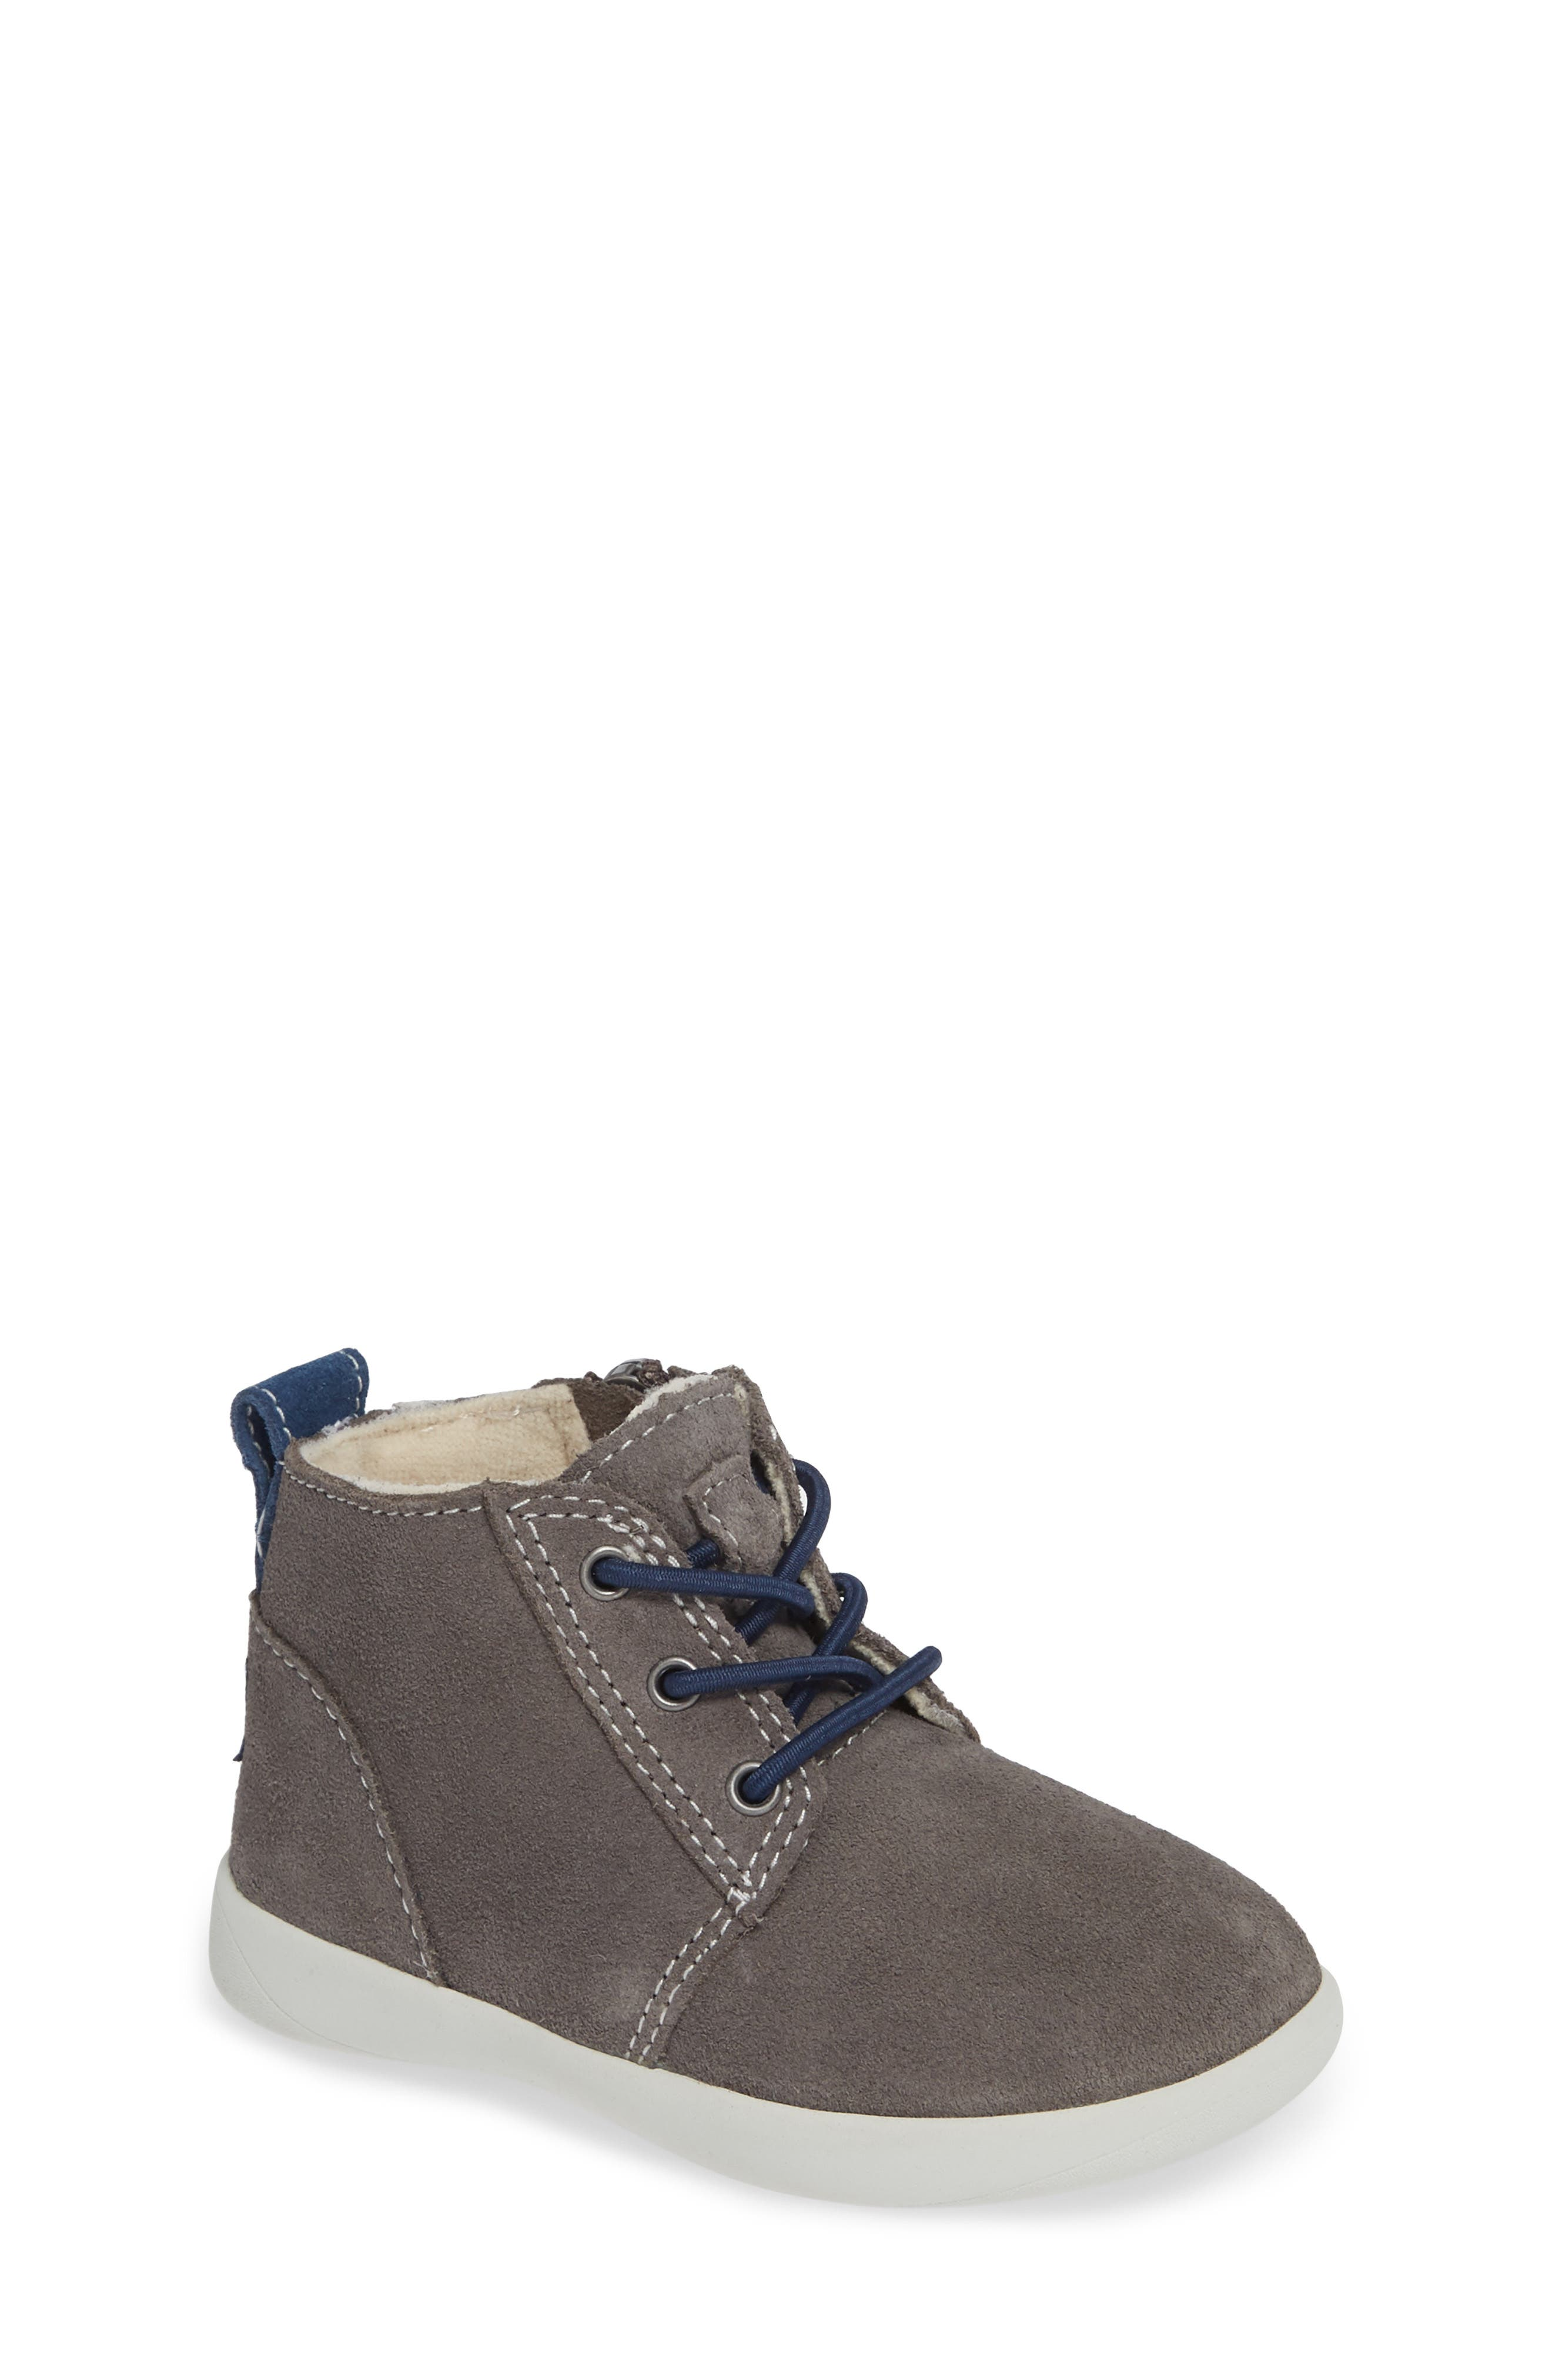 Kristjan Chukka Sneaker,                         Main,                         color, CHARCOAL GREY